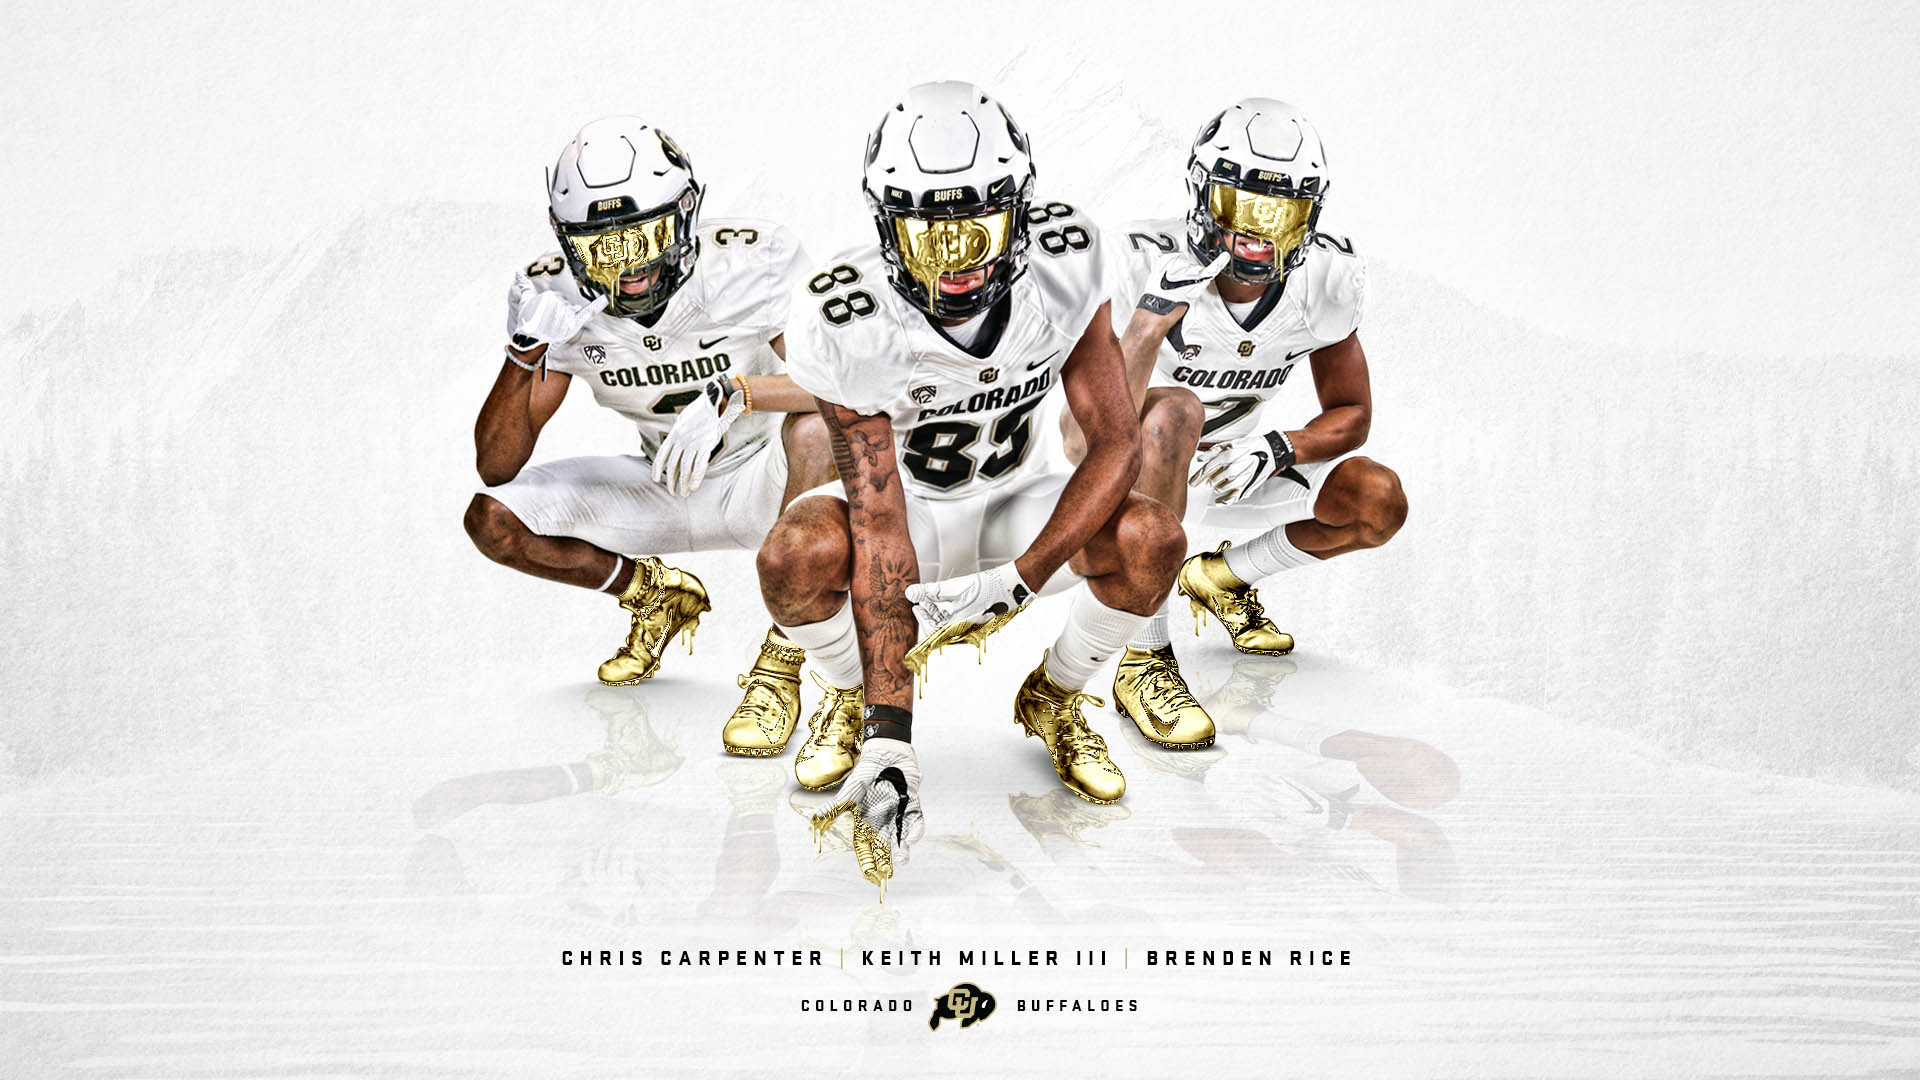 Colorado Football Recruiting